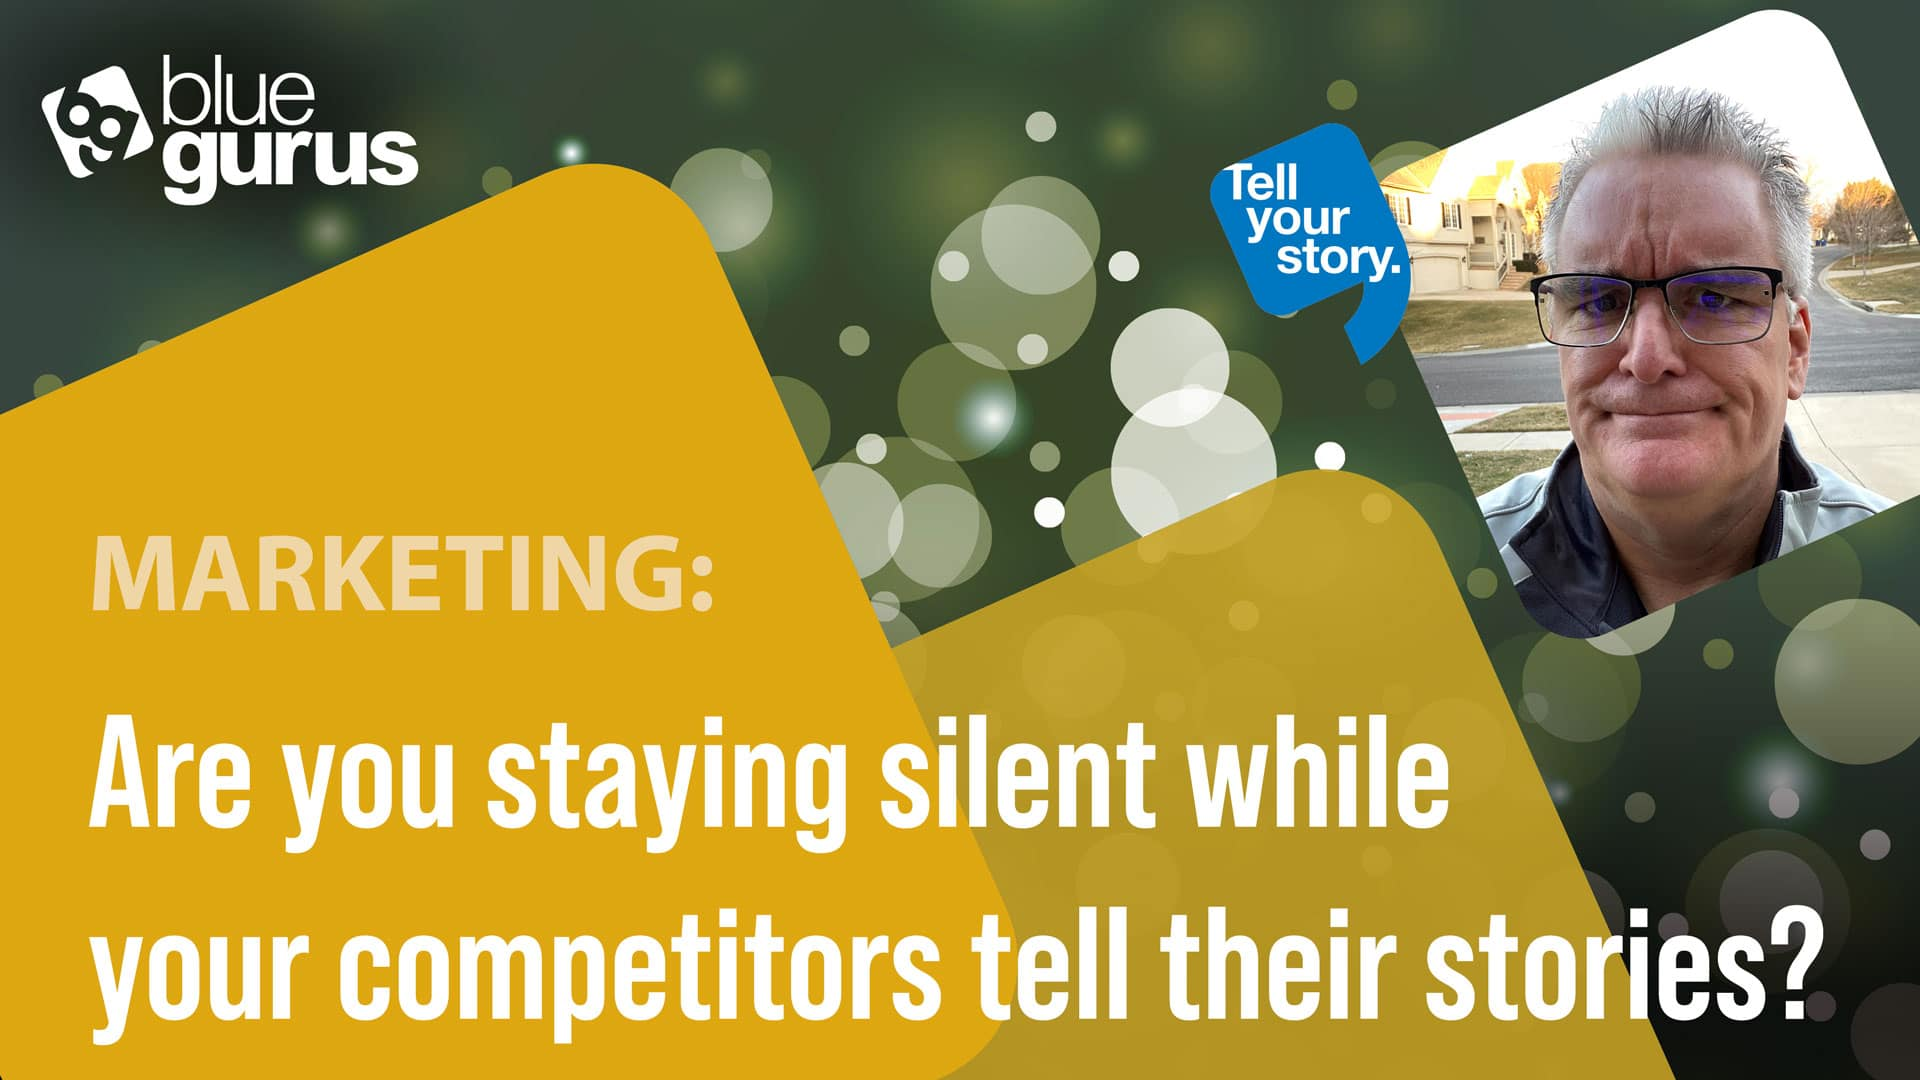 Are you staying silent while your competitors tell their stories?